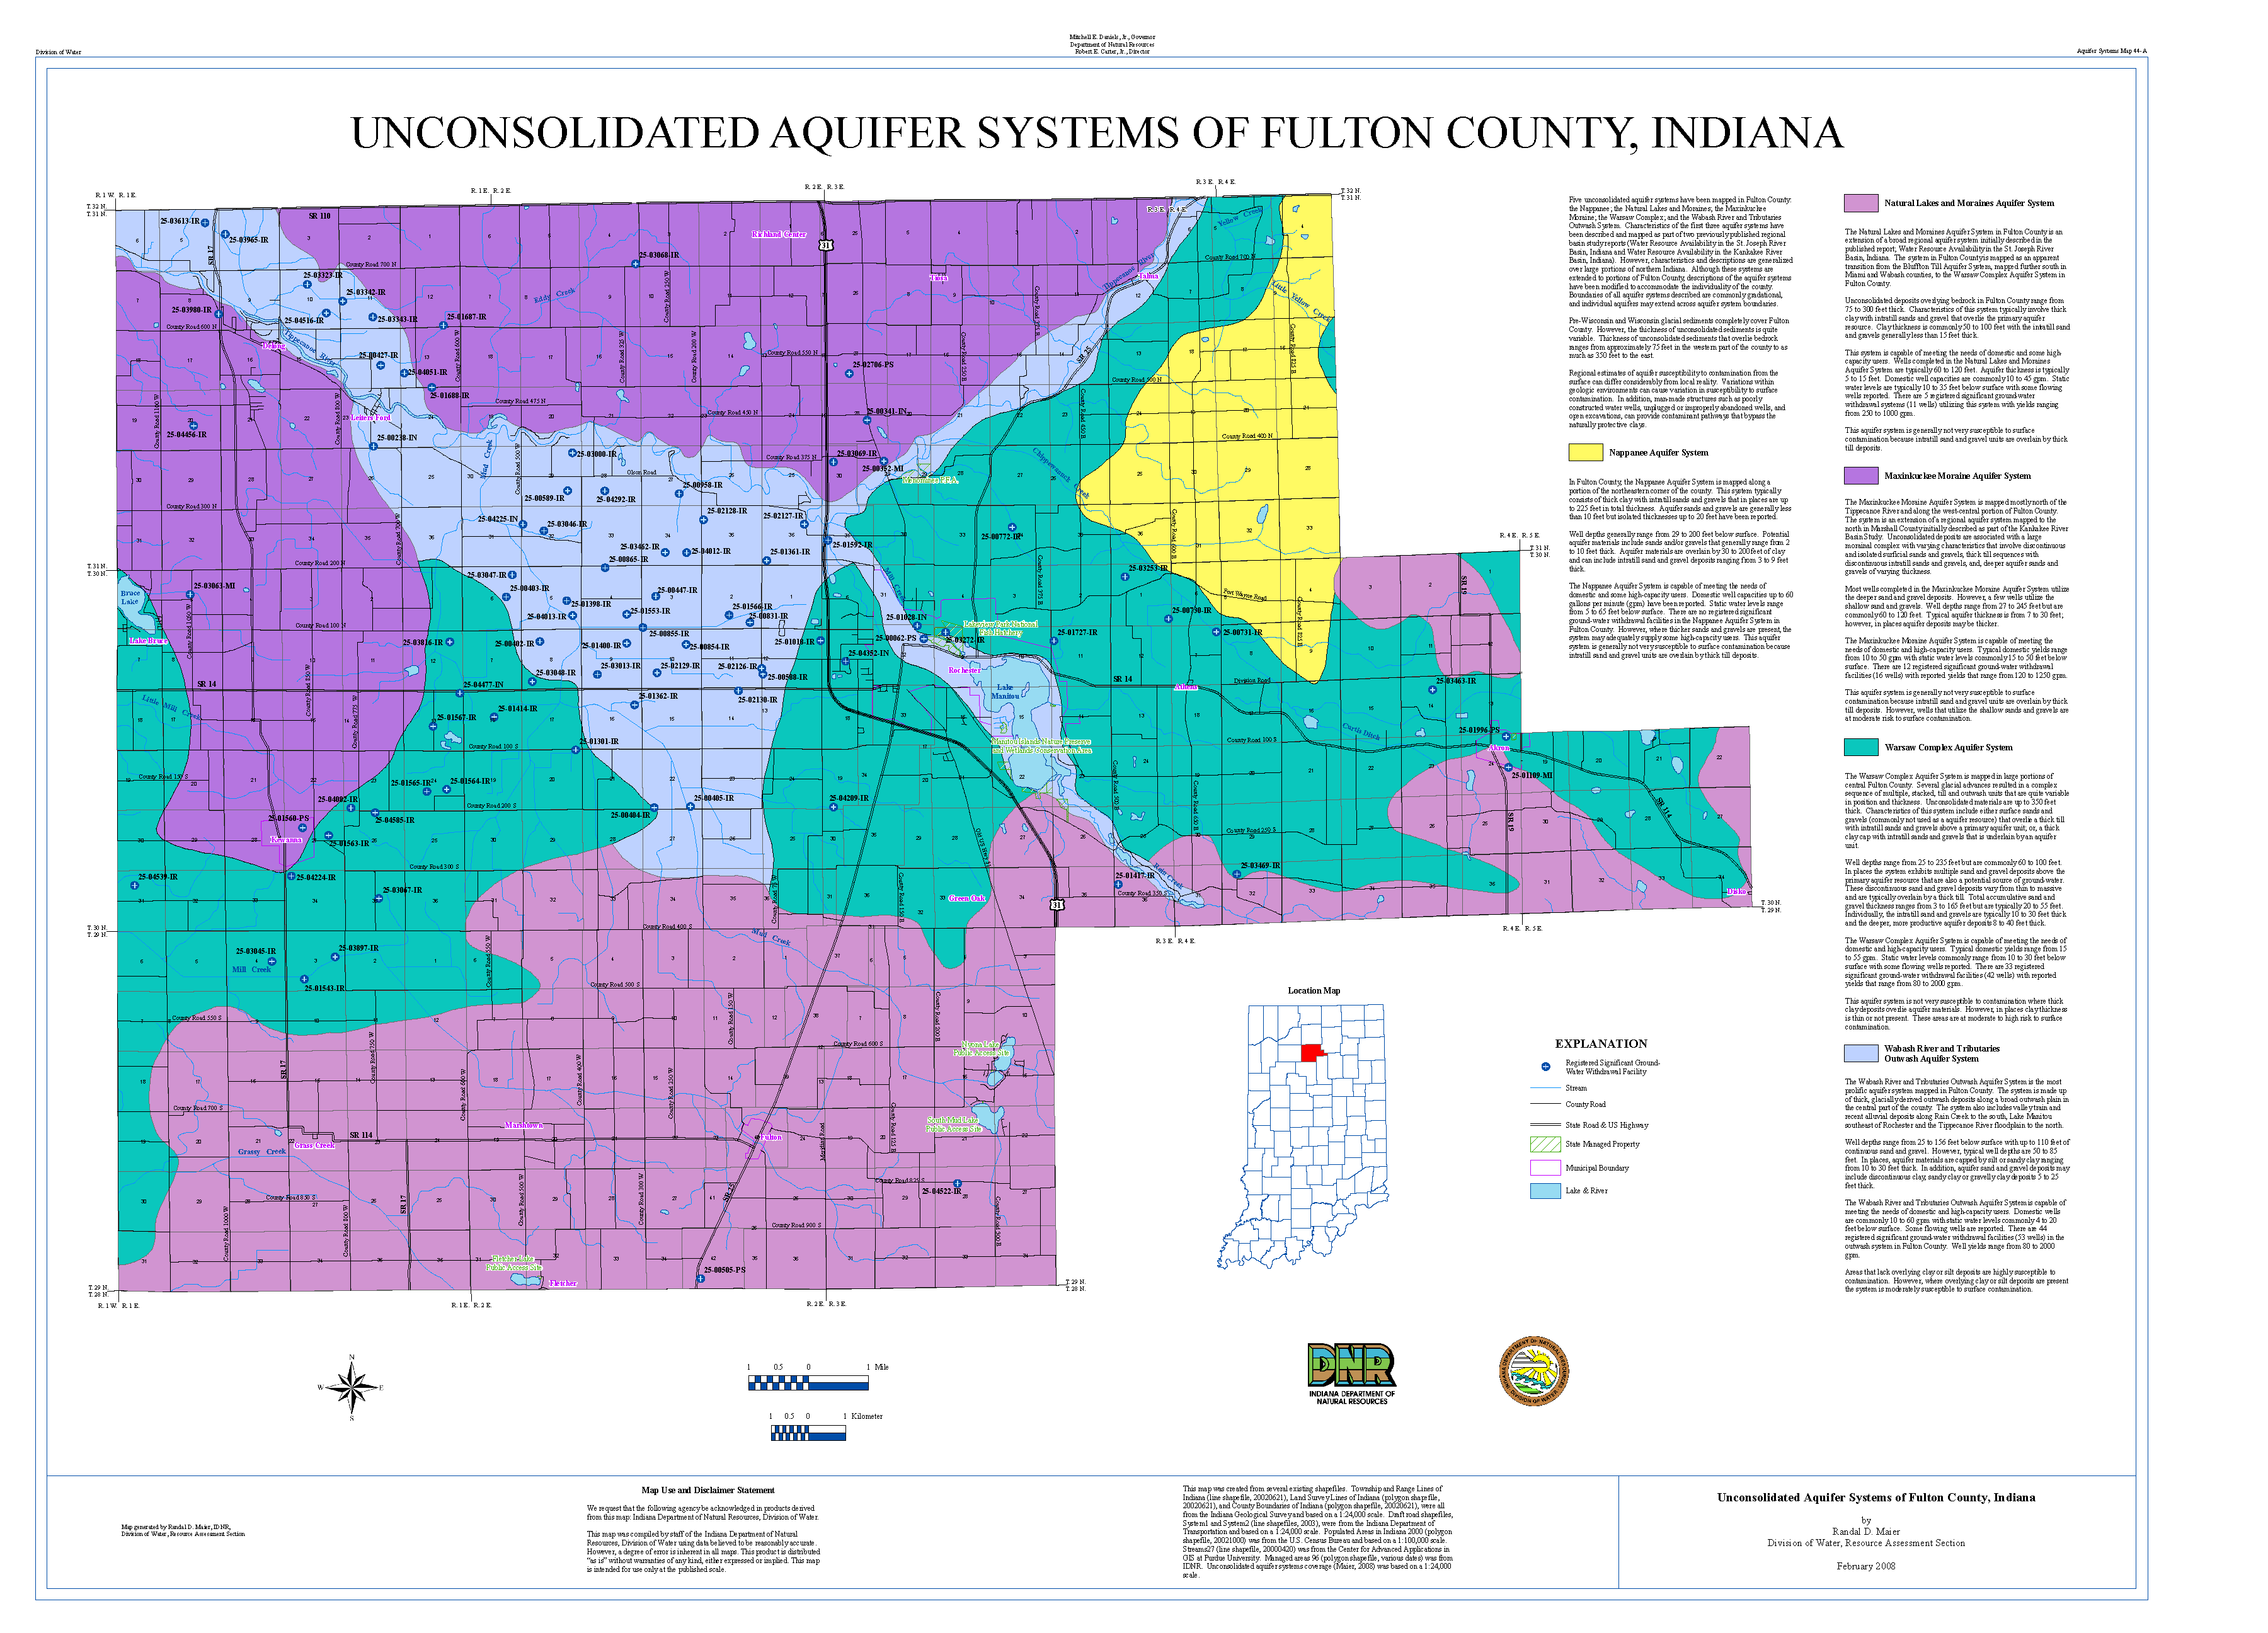 dnr aquifer systems maps 44 a and 44 b unconsolidated and